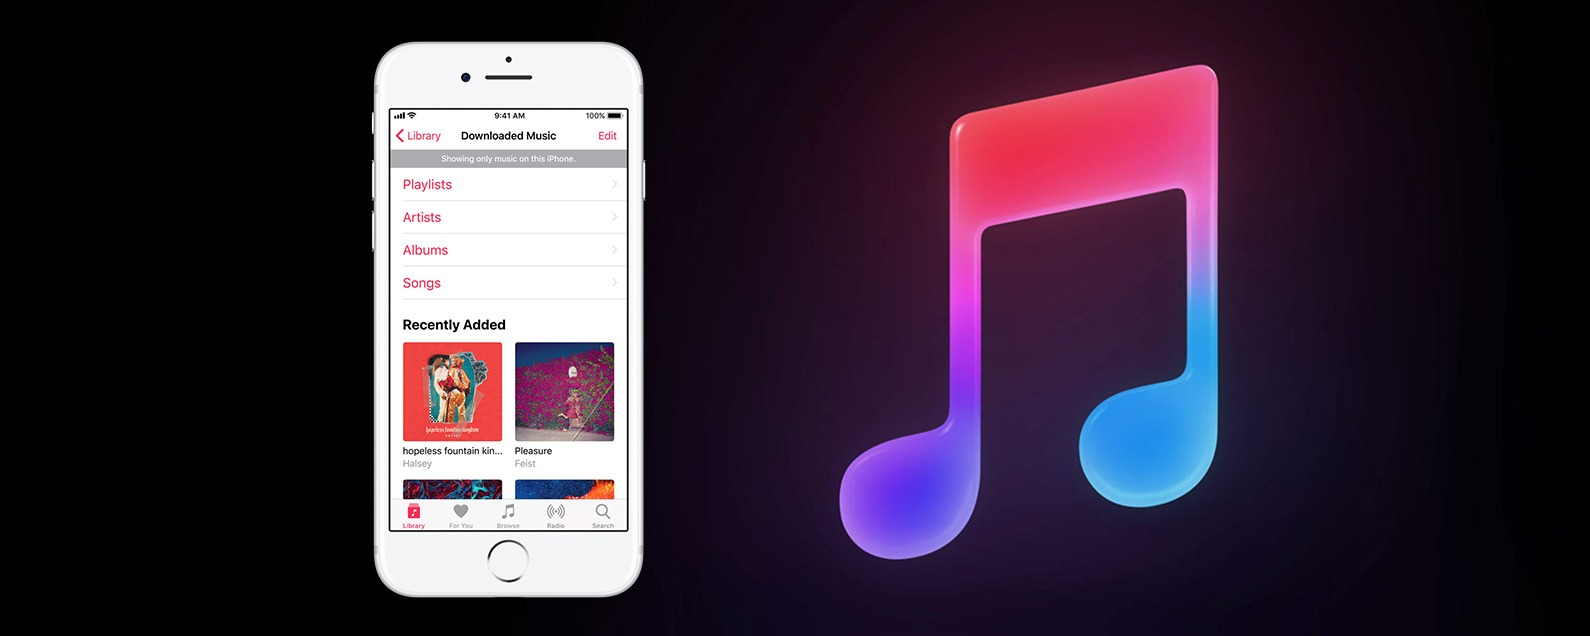 How to download music to new iphone